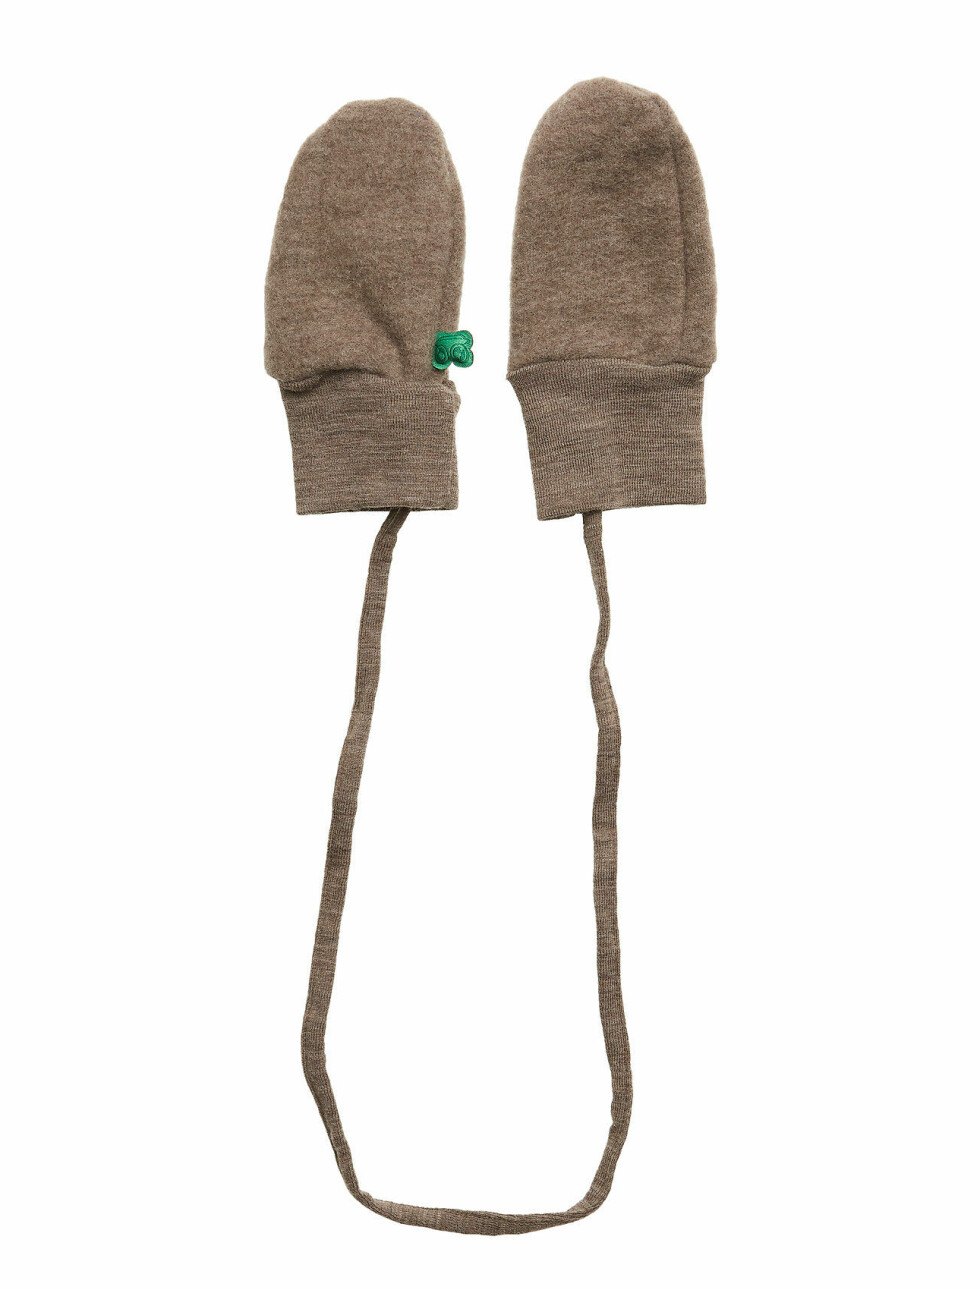 Votter fra Freds World |189,-| https://www.boozt.com/no/no/freds-world-by-green-cotton/wool-fleece-mittens_18324657/18324664?navId=68013&group=listing&position=1000000